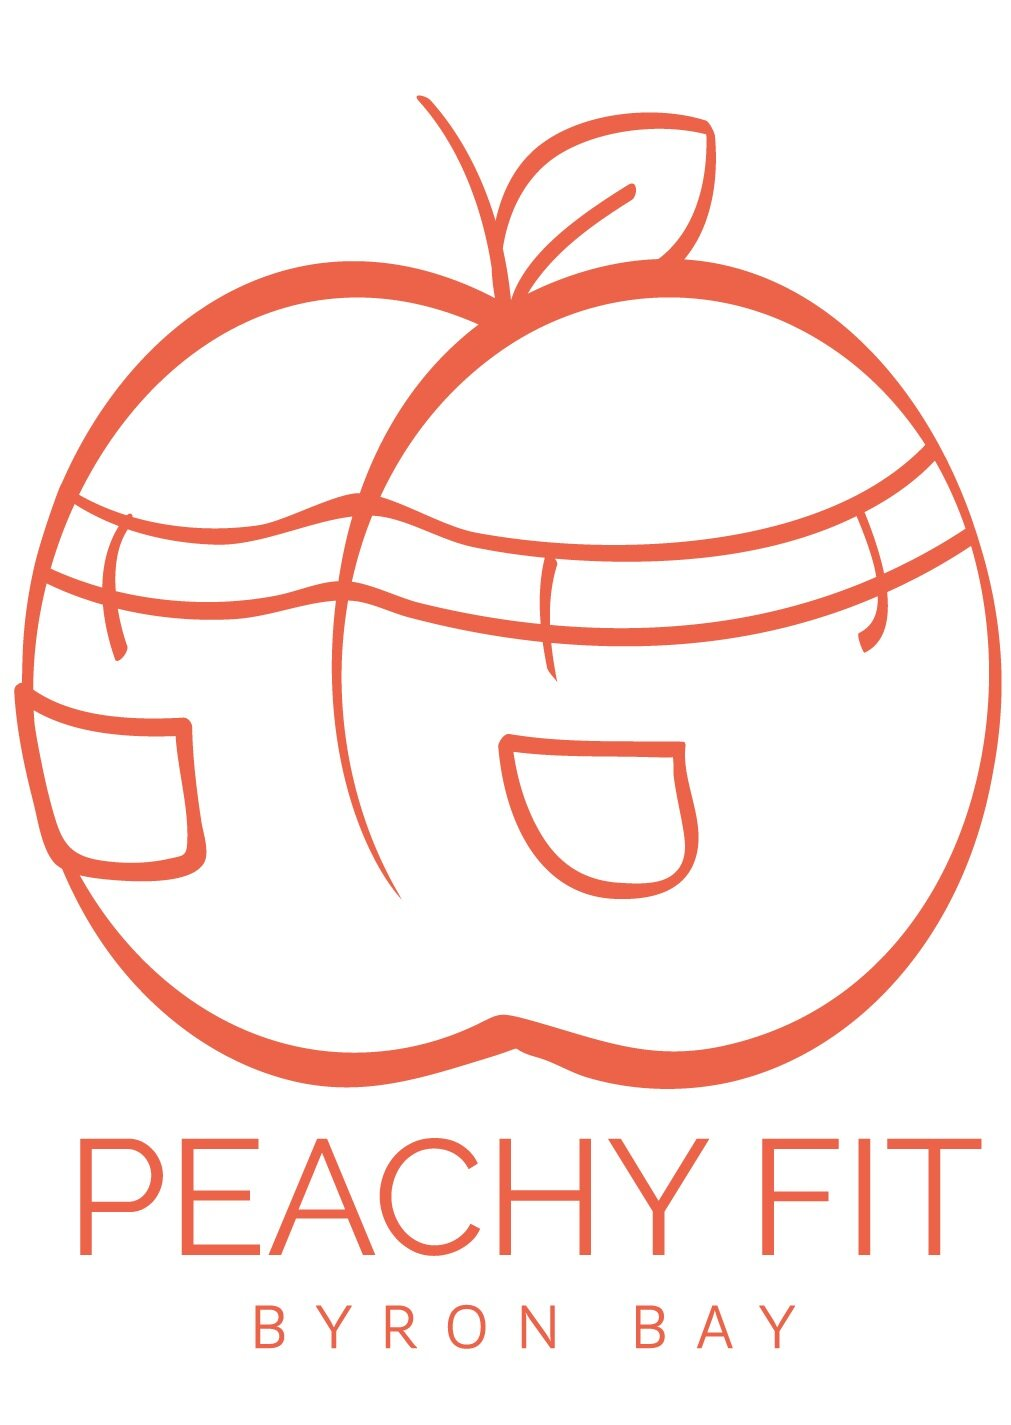 Peachy Fit